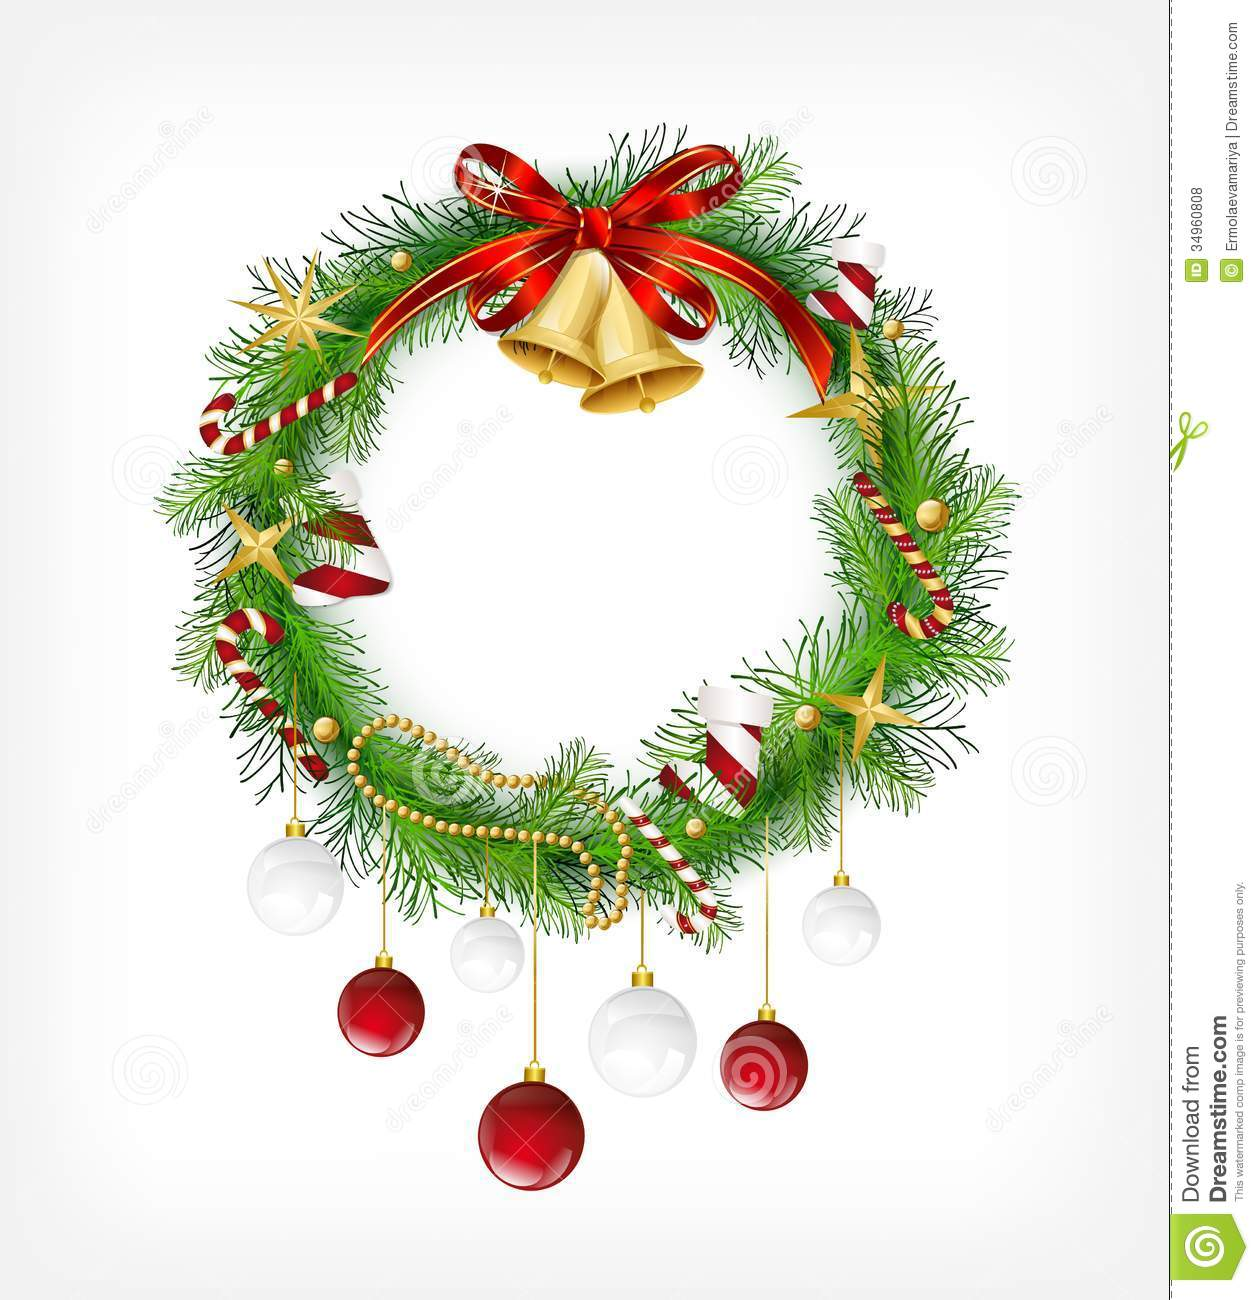 Christmas garland with bells and holly berry royalty free